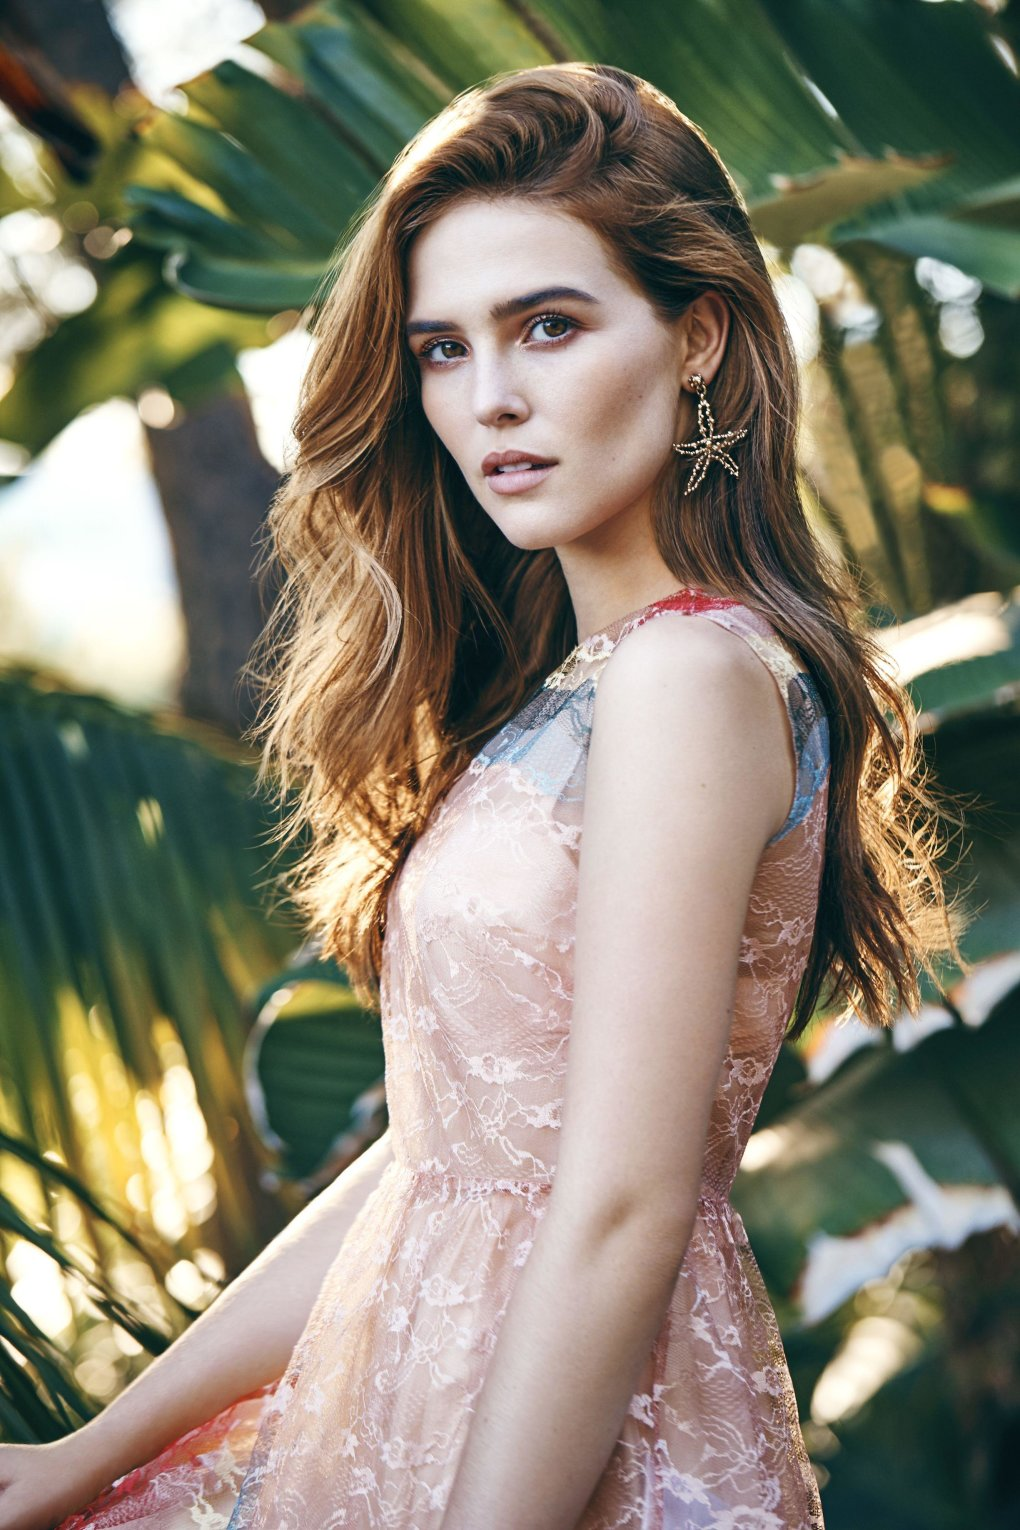 The Sexiest Zoey Deutch Pictures Ever - Barnorama-1965